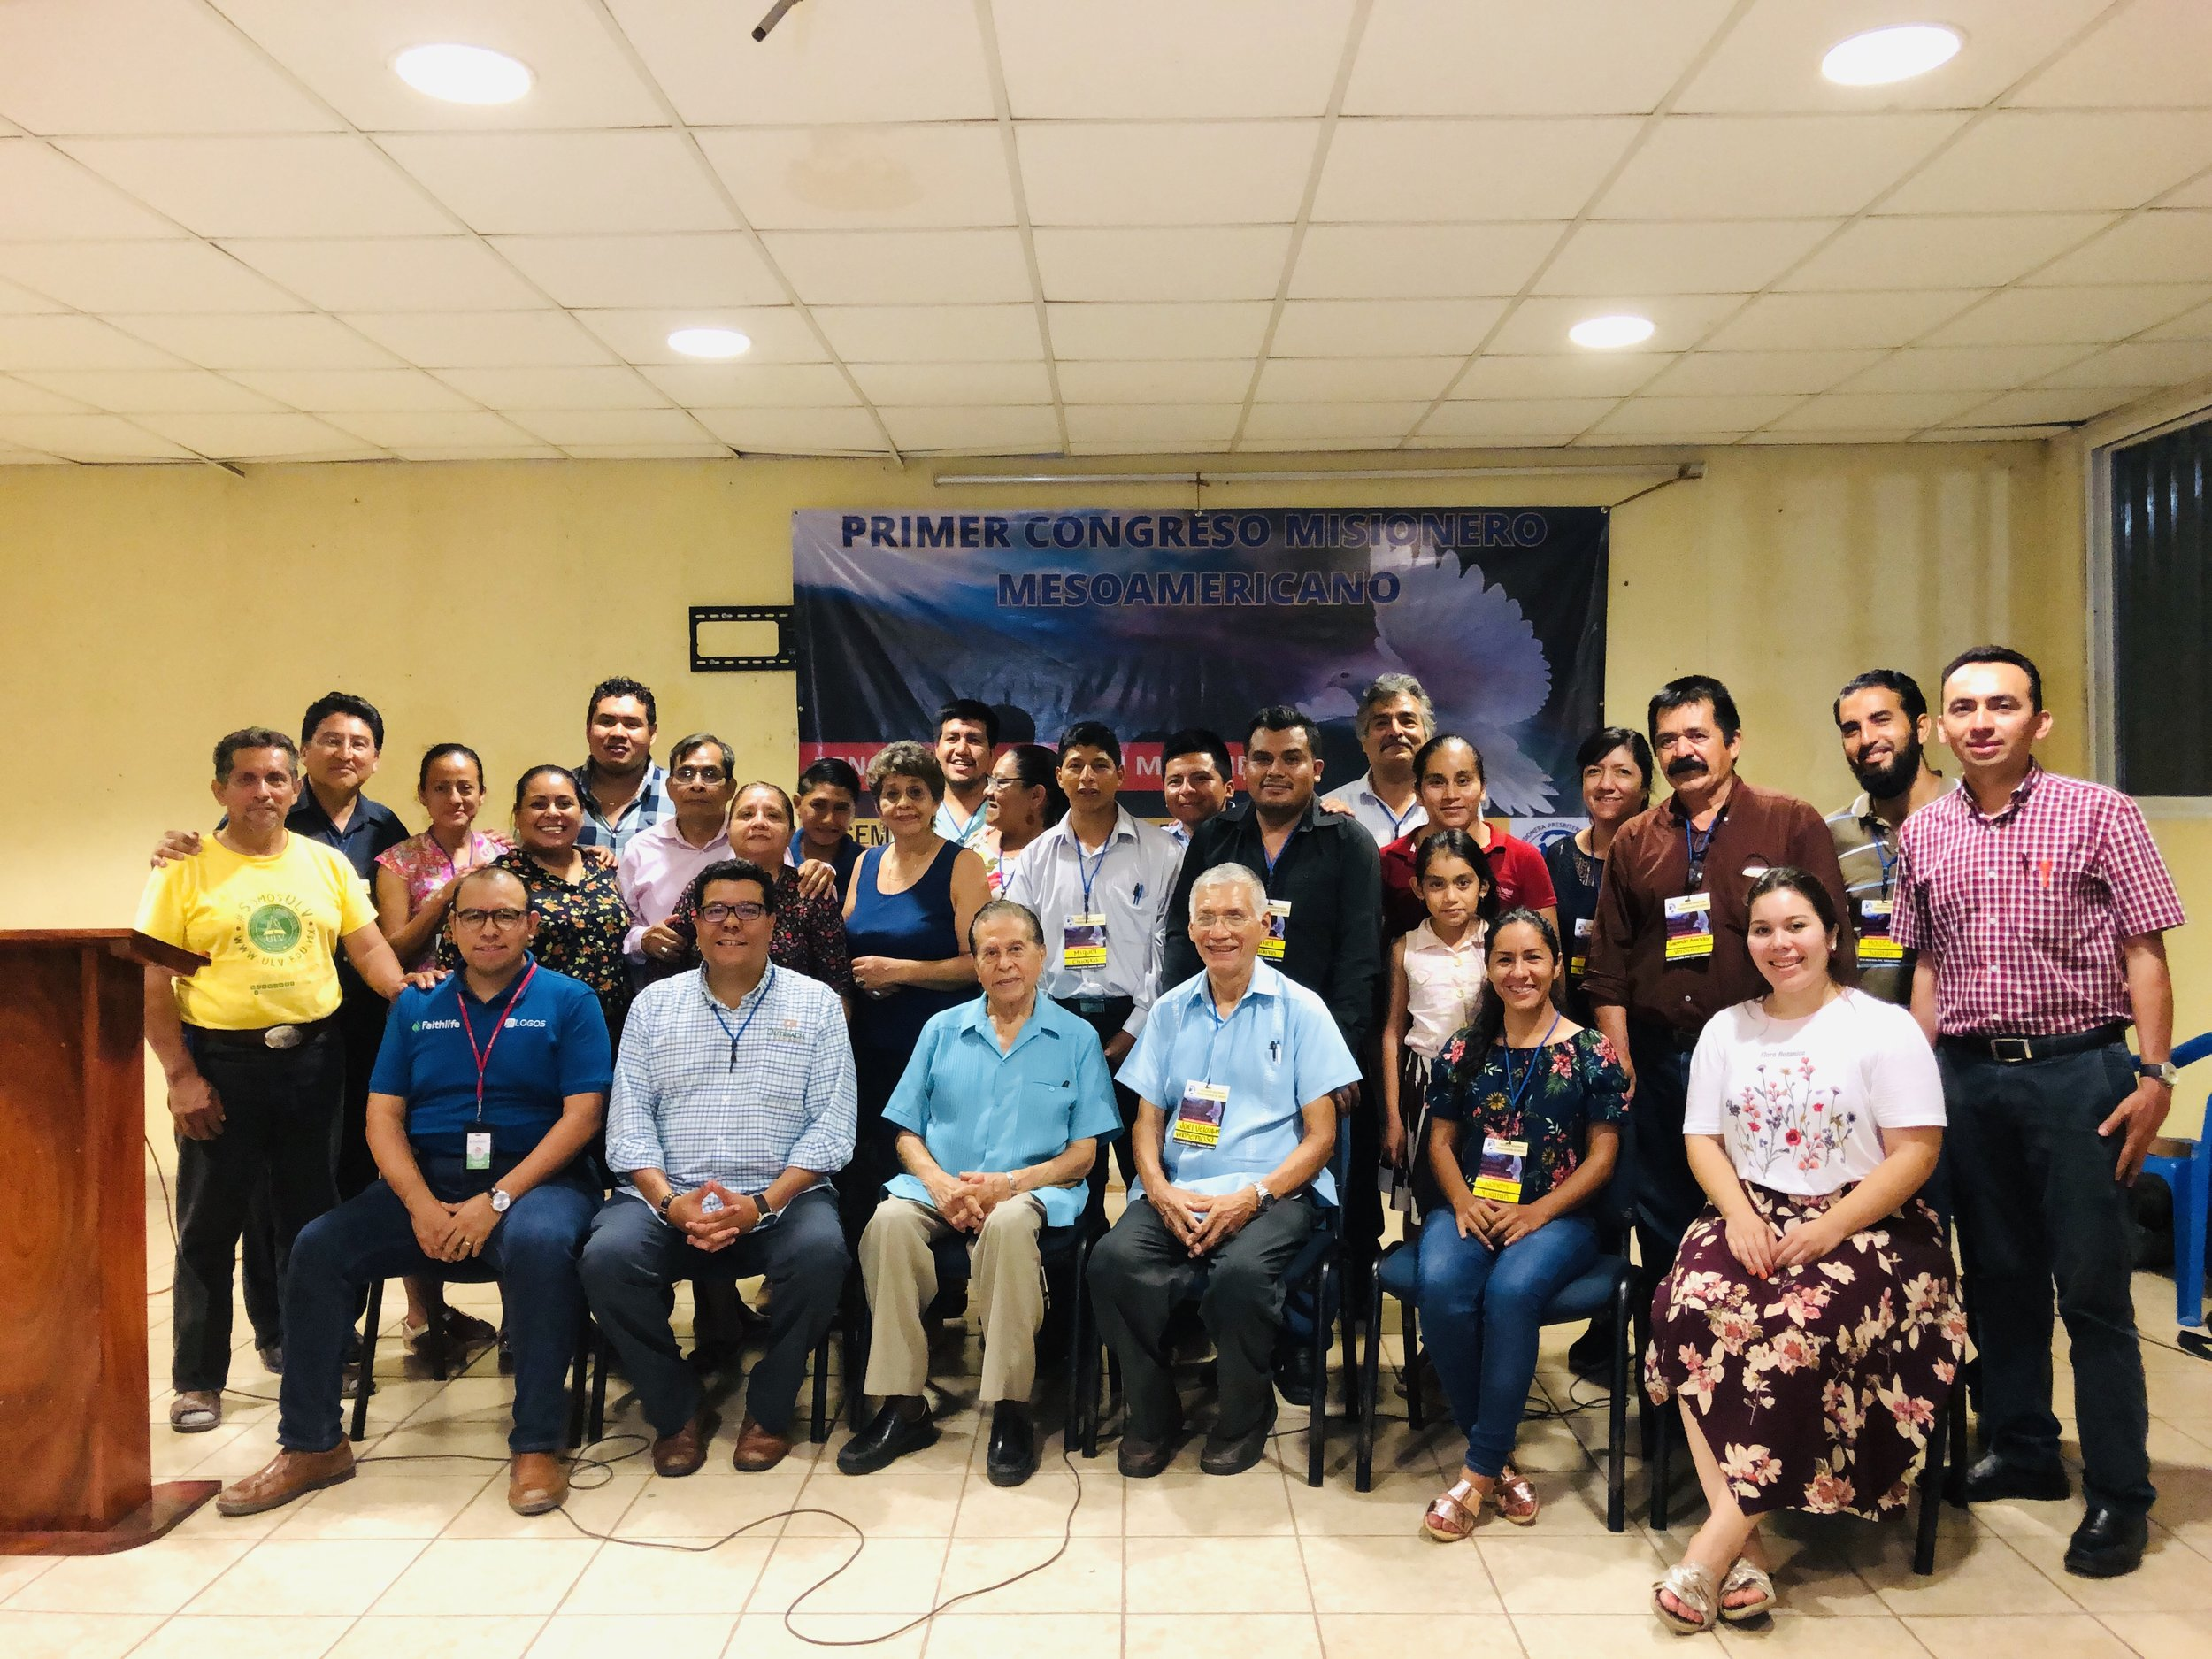 Some of the participants in the 1st Conference of the Presbyterian Mission Society of Mexico